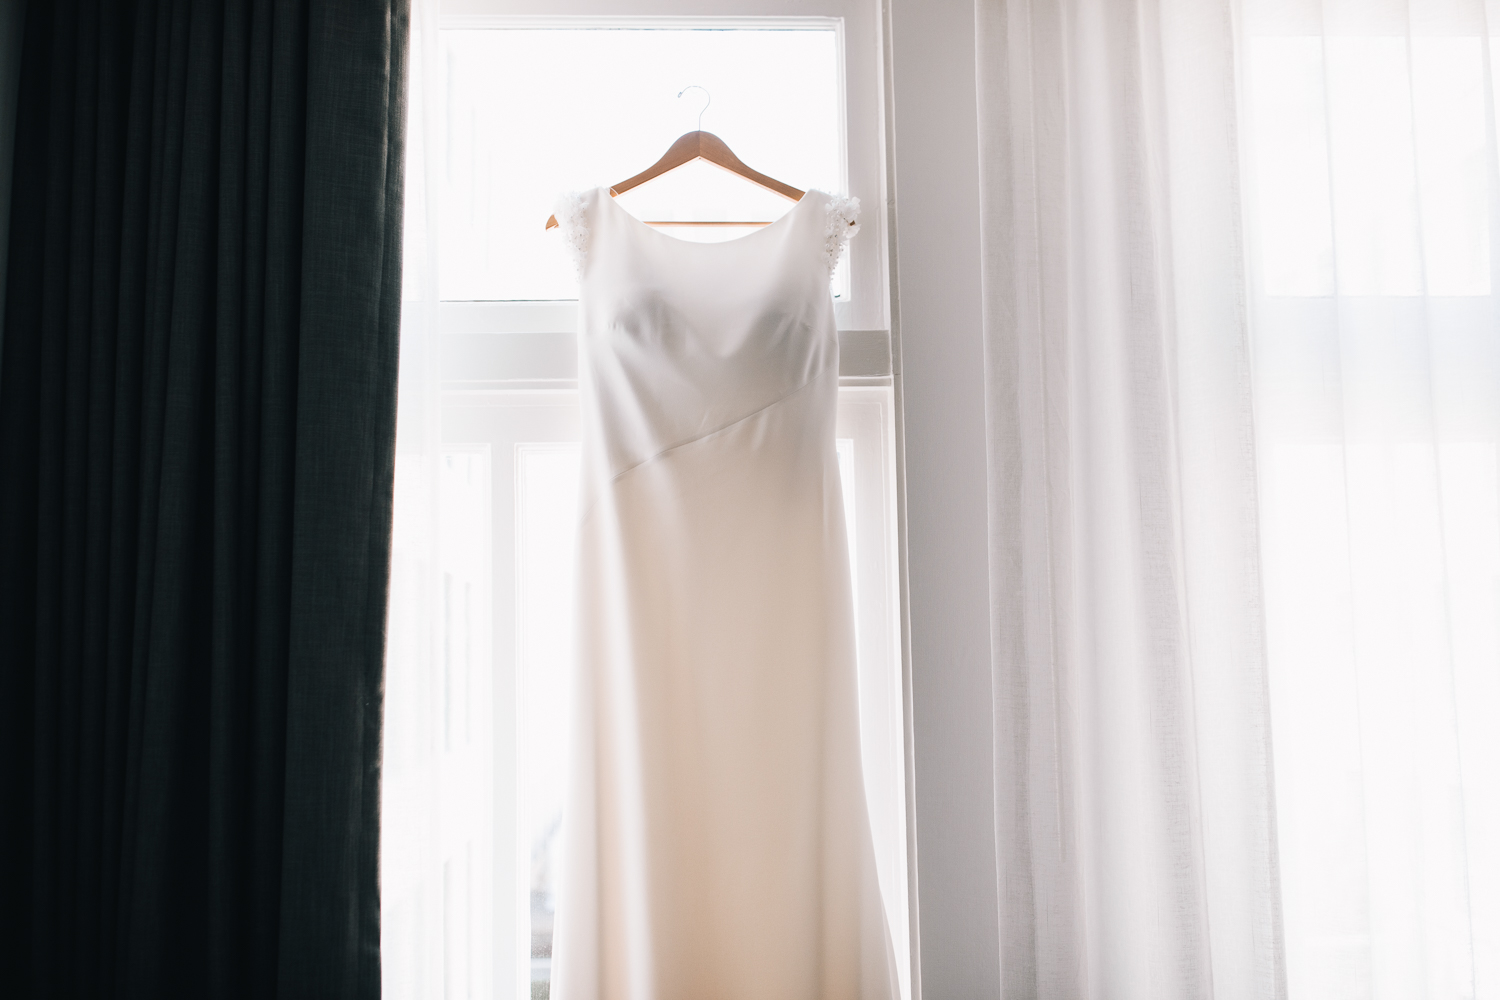 2019.06.01 Ana + Richard SF Wedding Blog Photos -4842.jpg